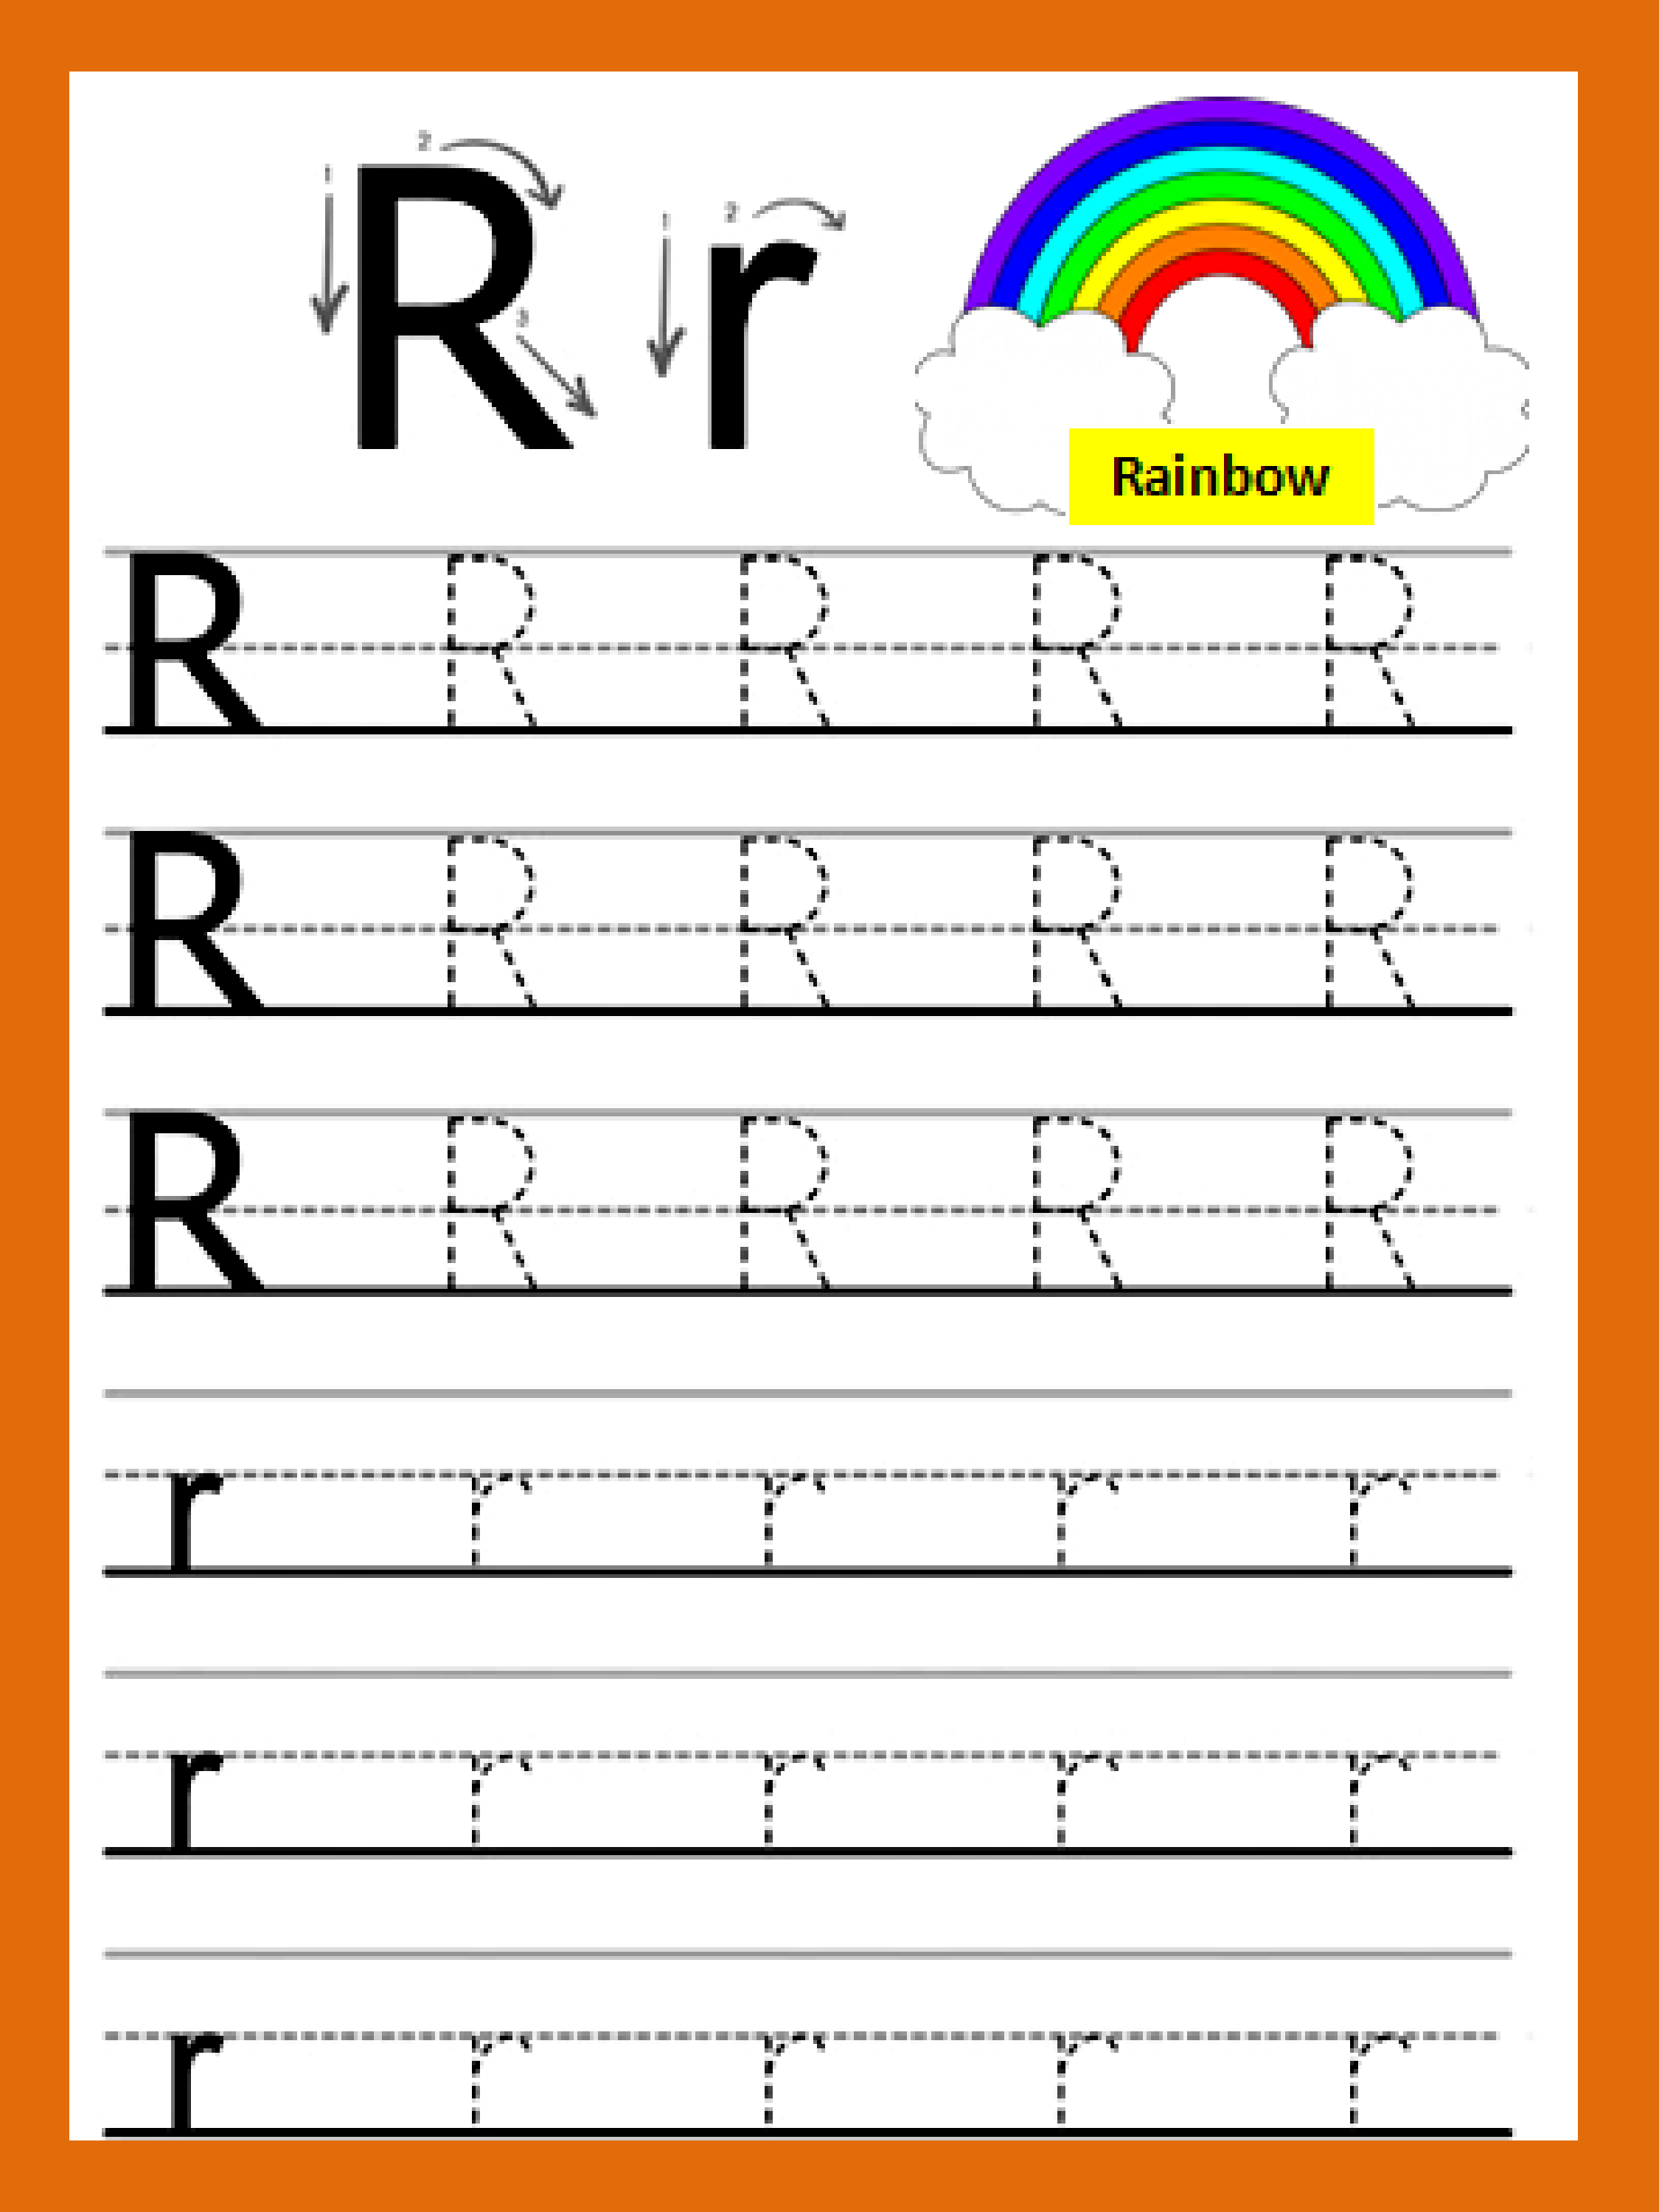 Letter Rr In